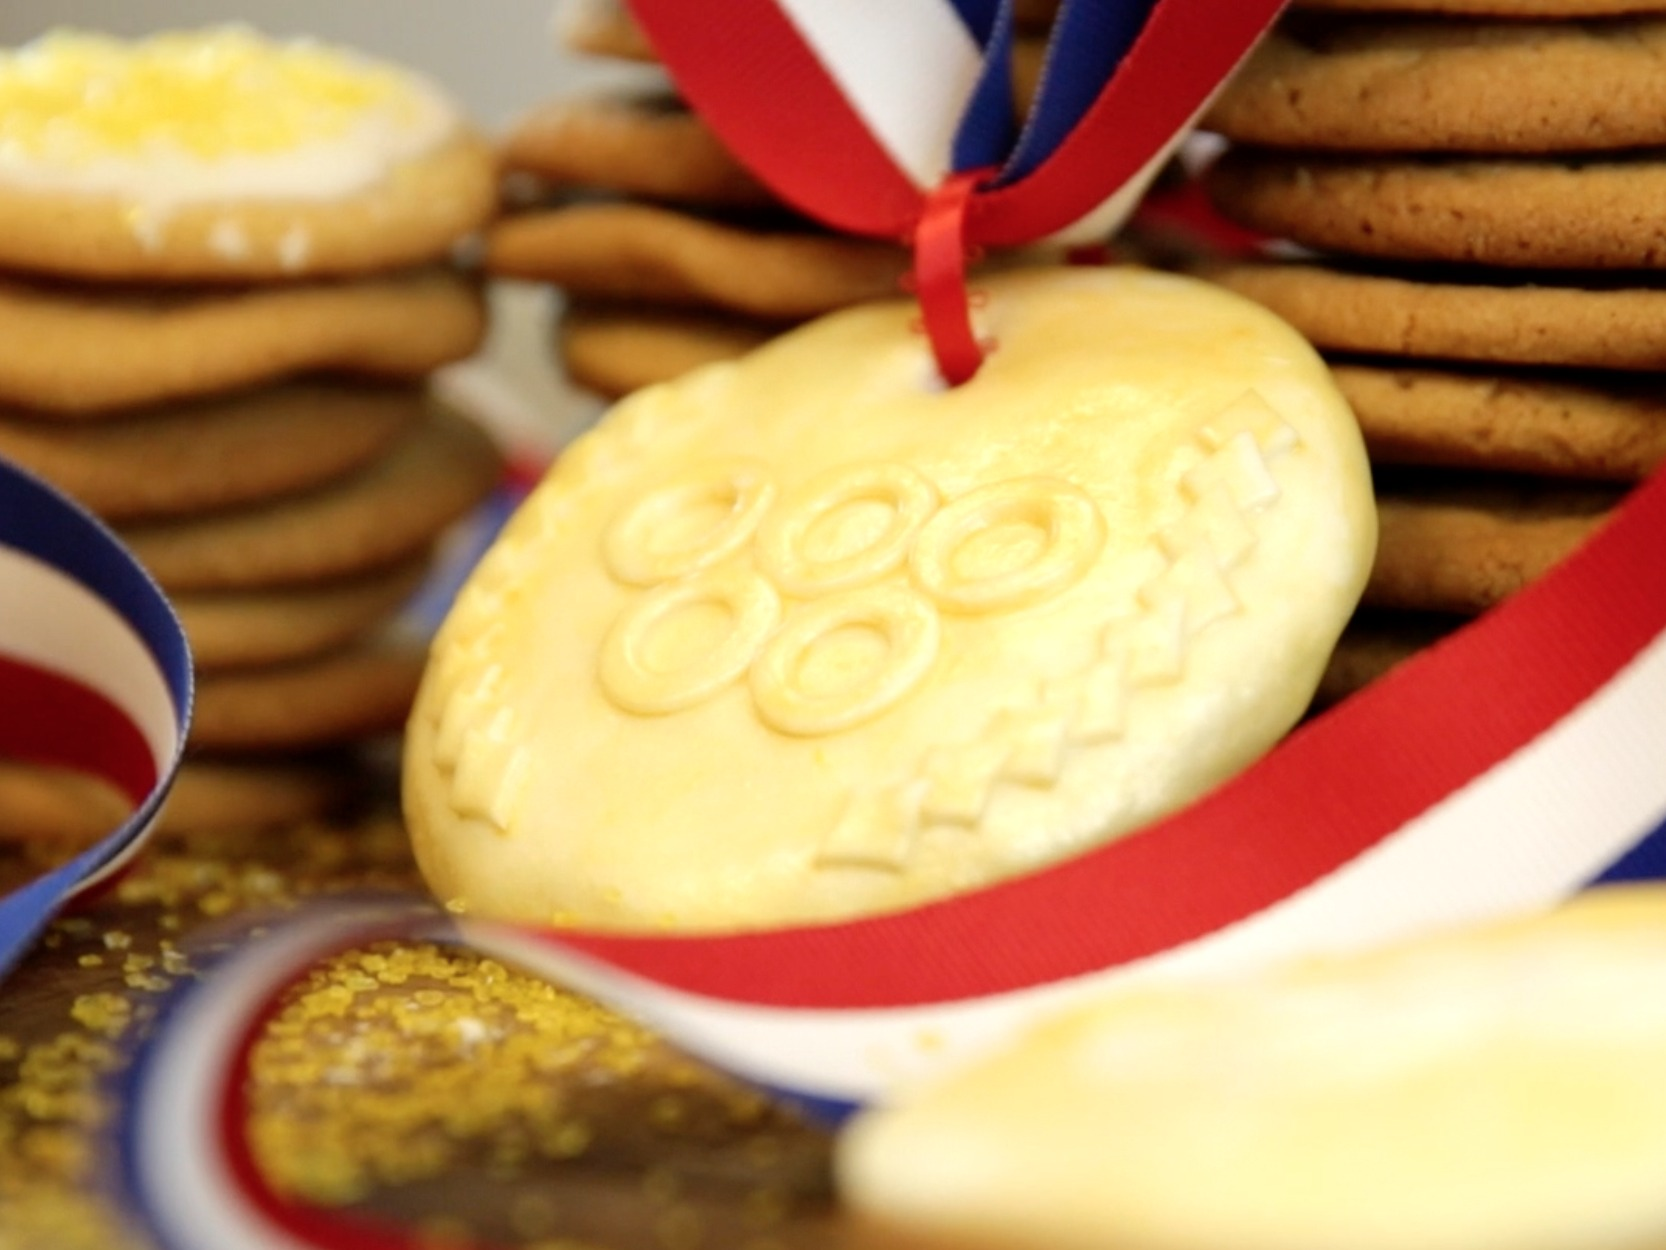 Gold medal cookie